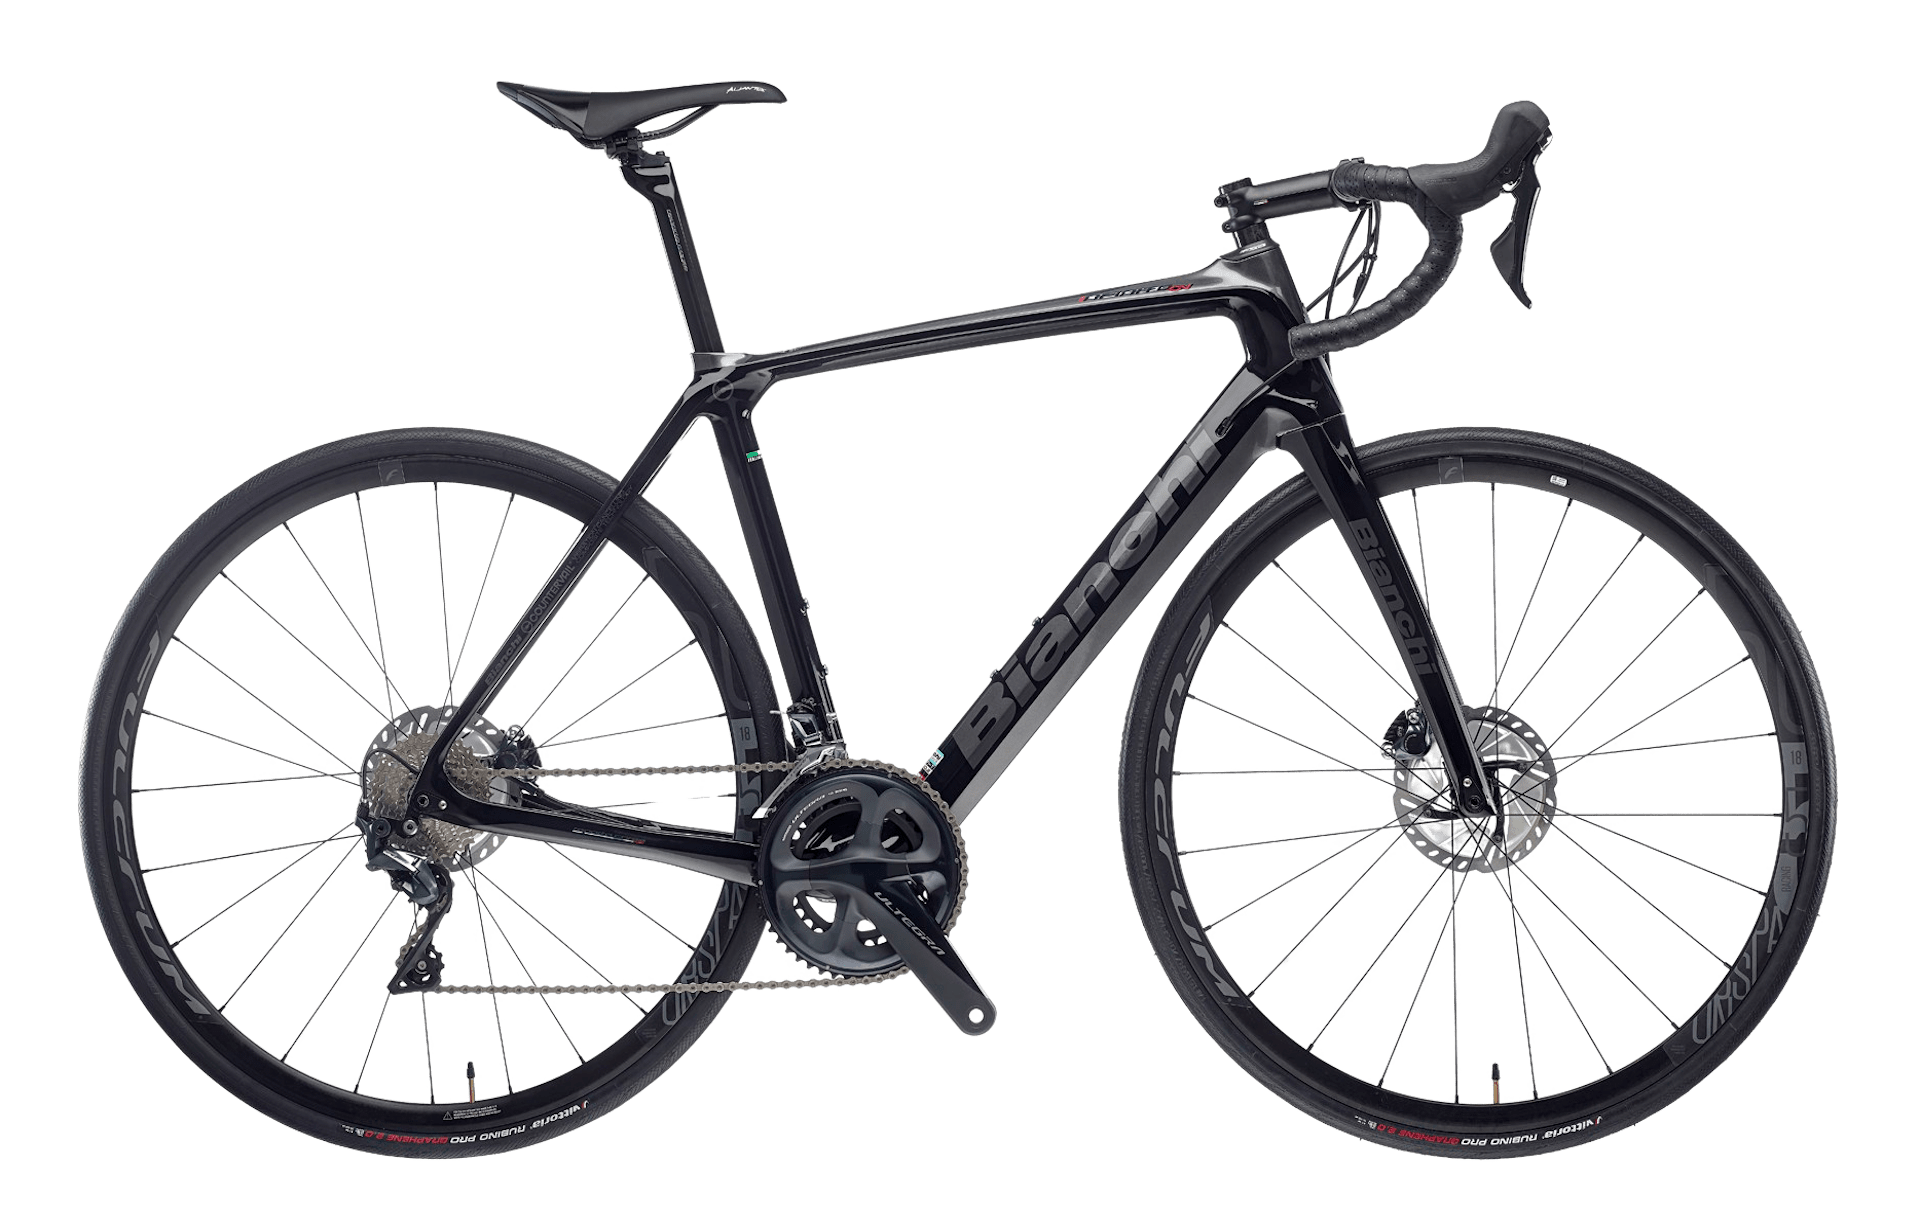 bianchi infinito racefiets